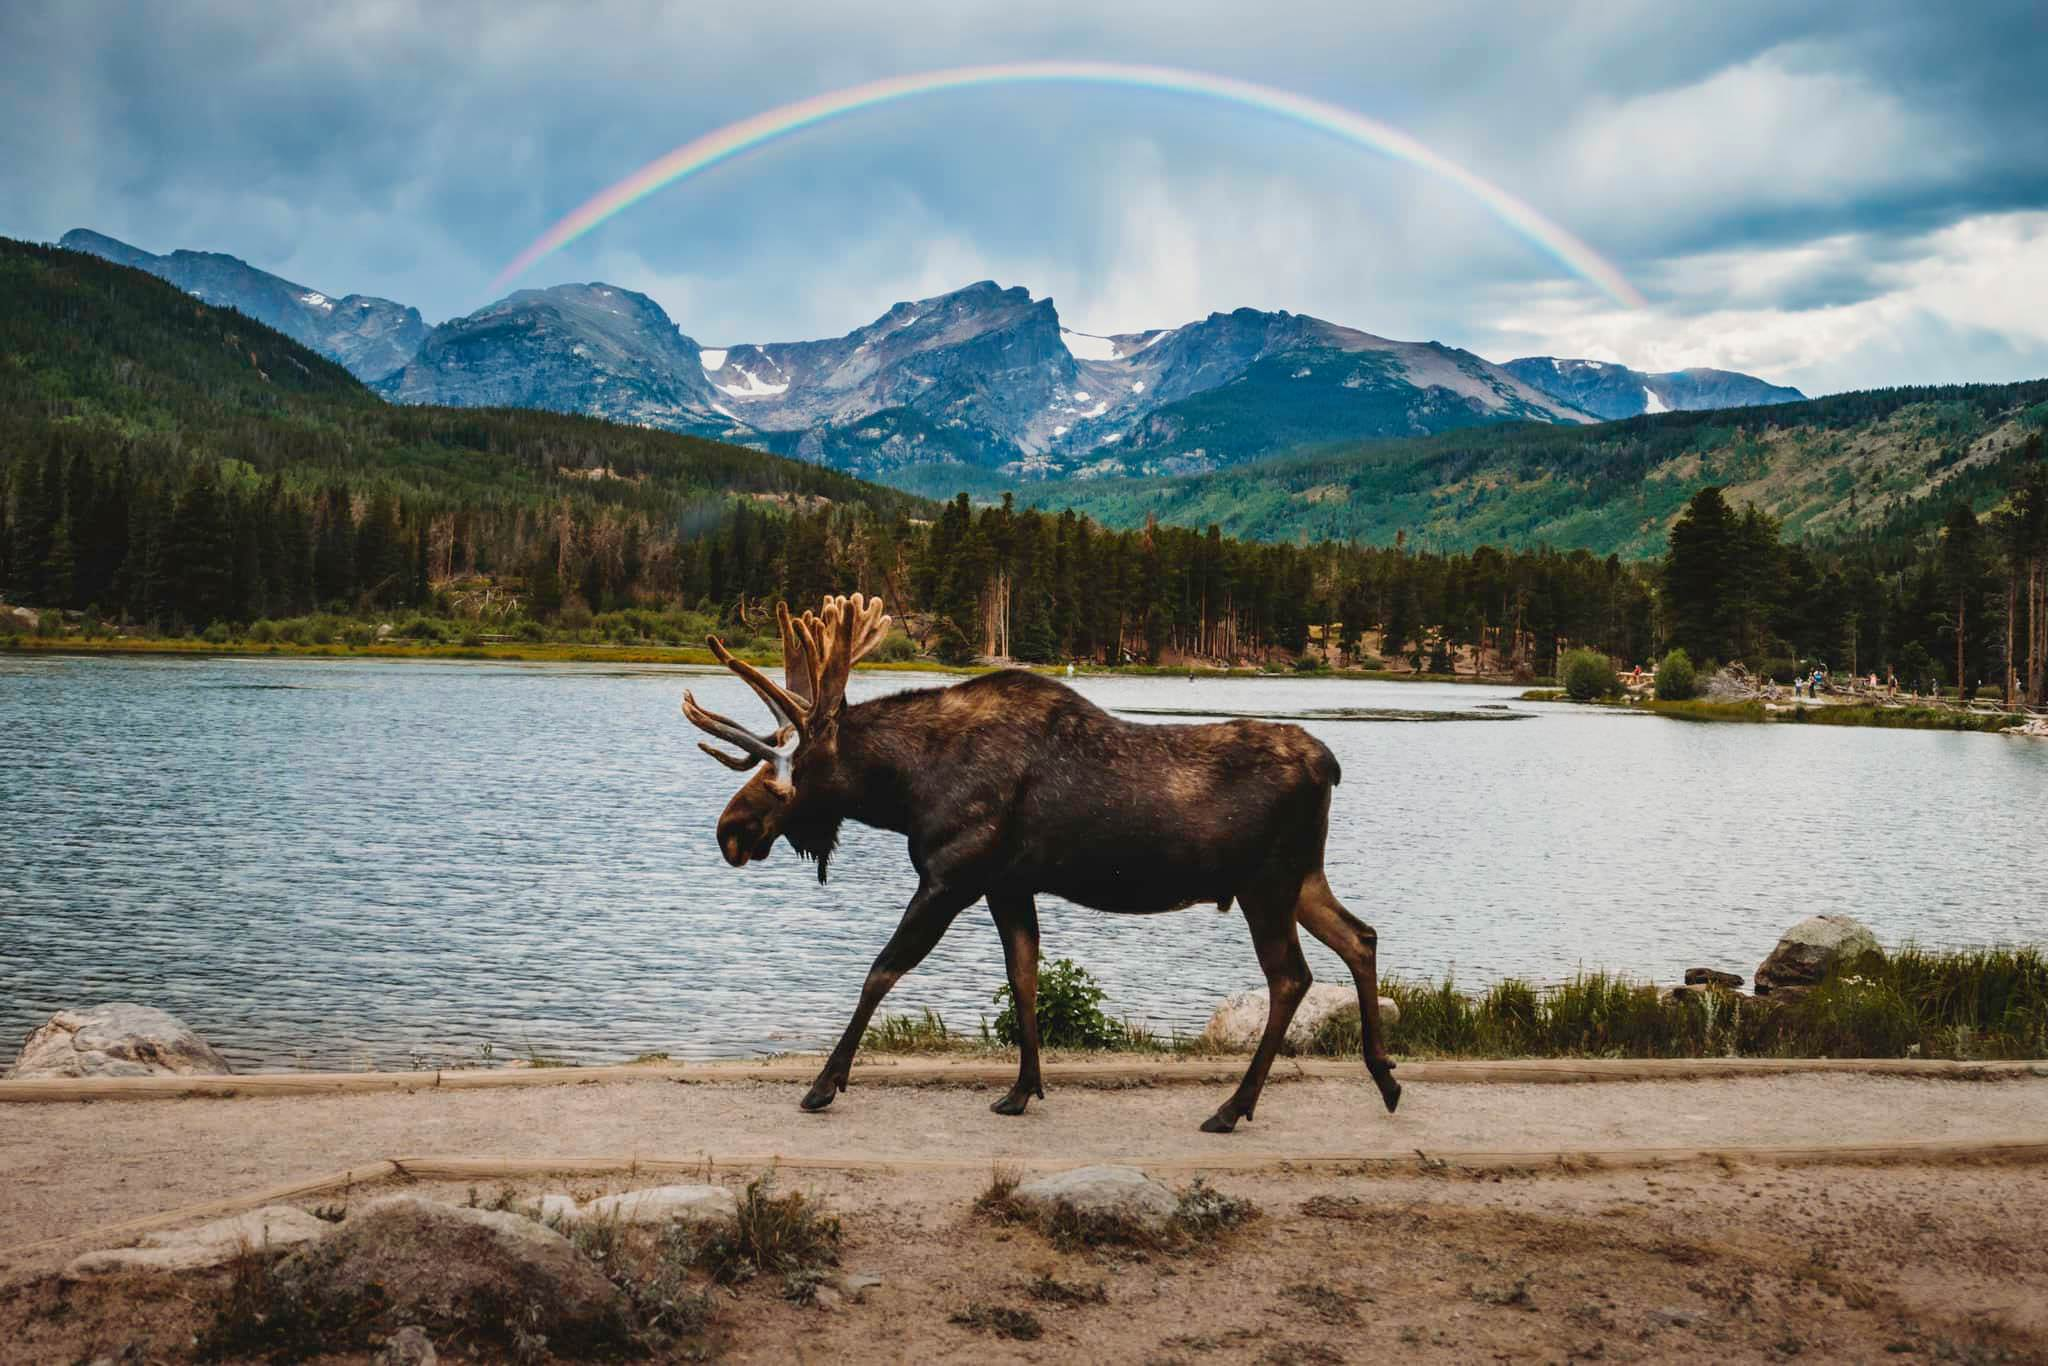 a moose walks on a way by a lake with mountains and a rainbow in the background